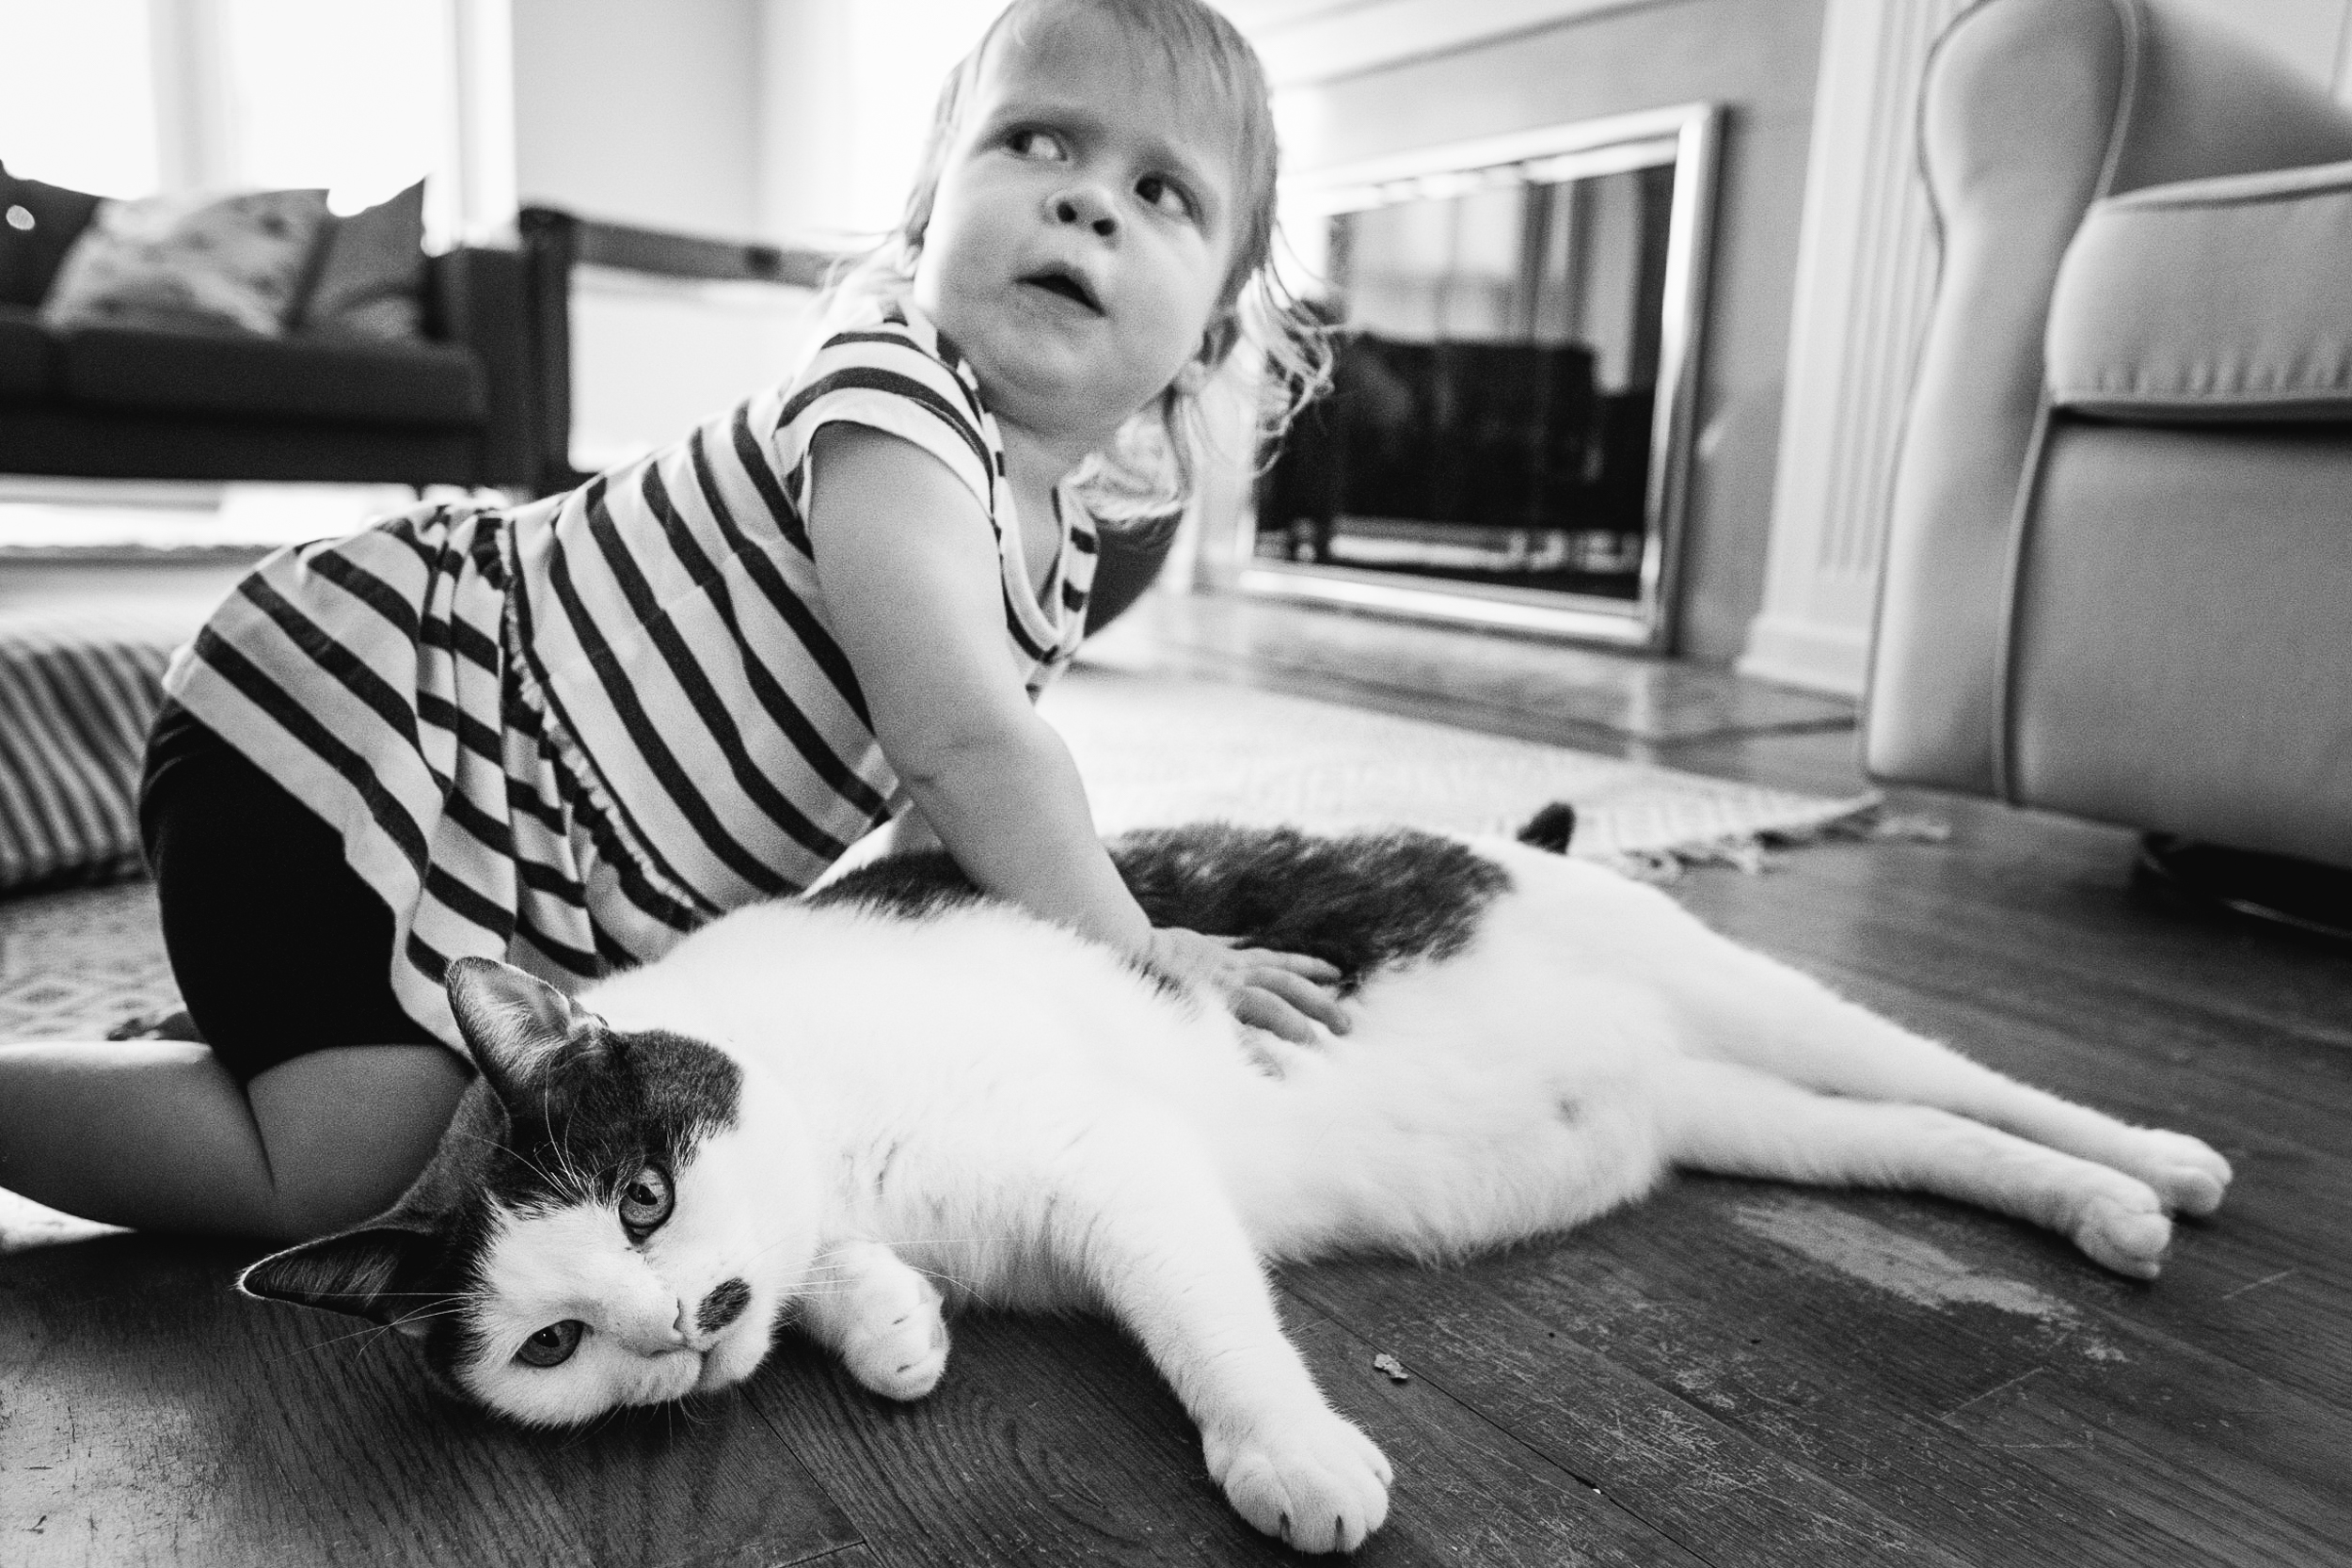 Baby and kitty relationships. Detroit Family Photographer.